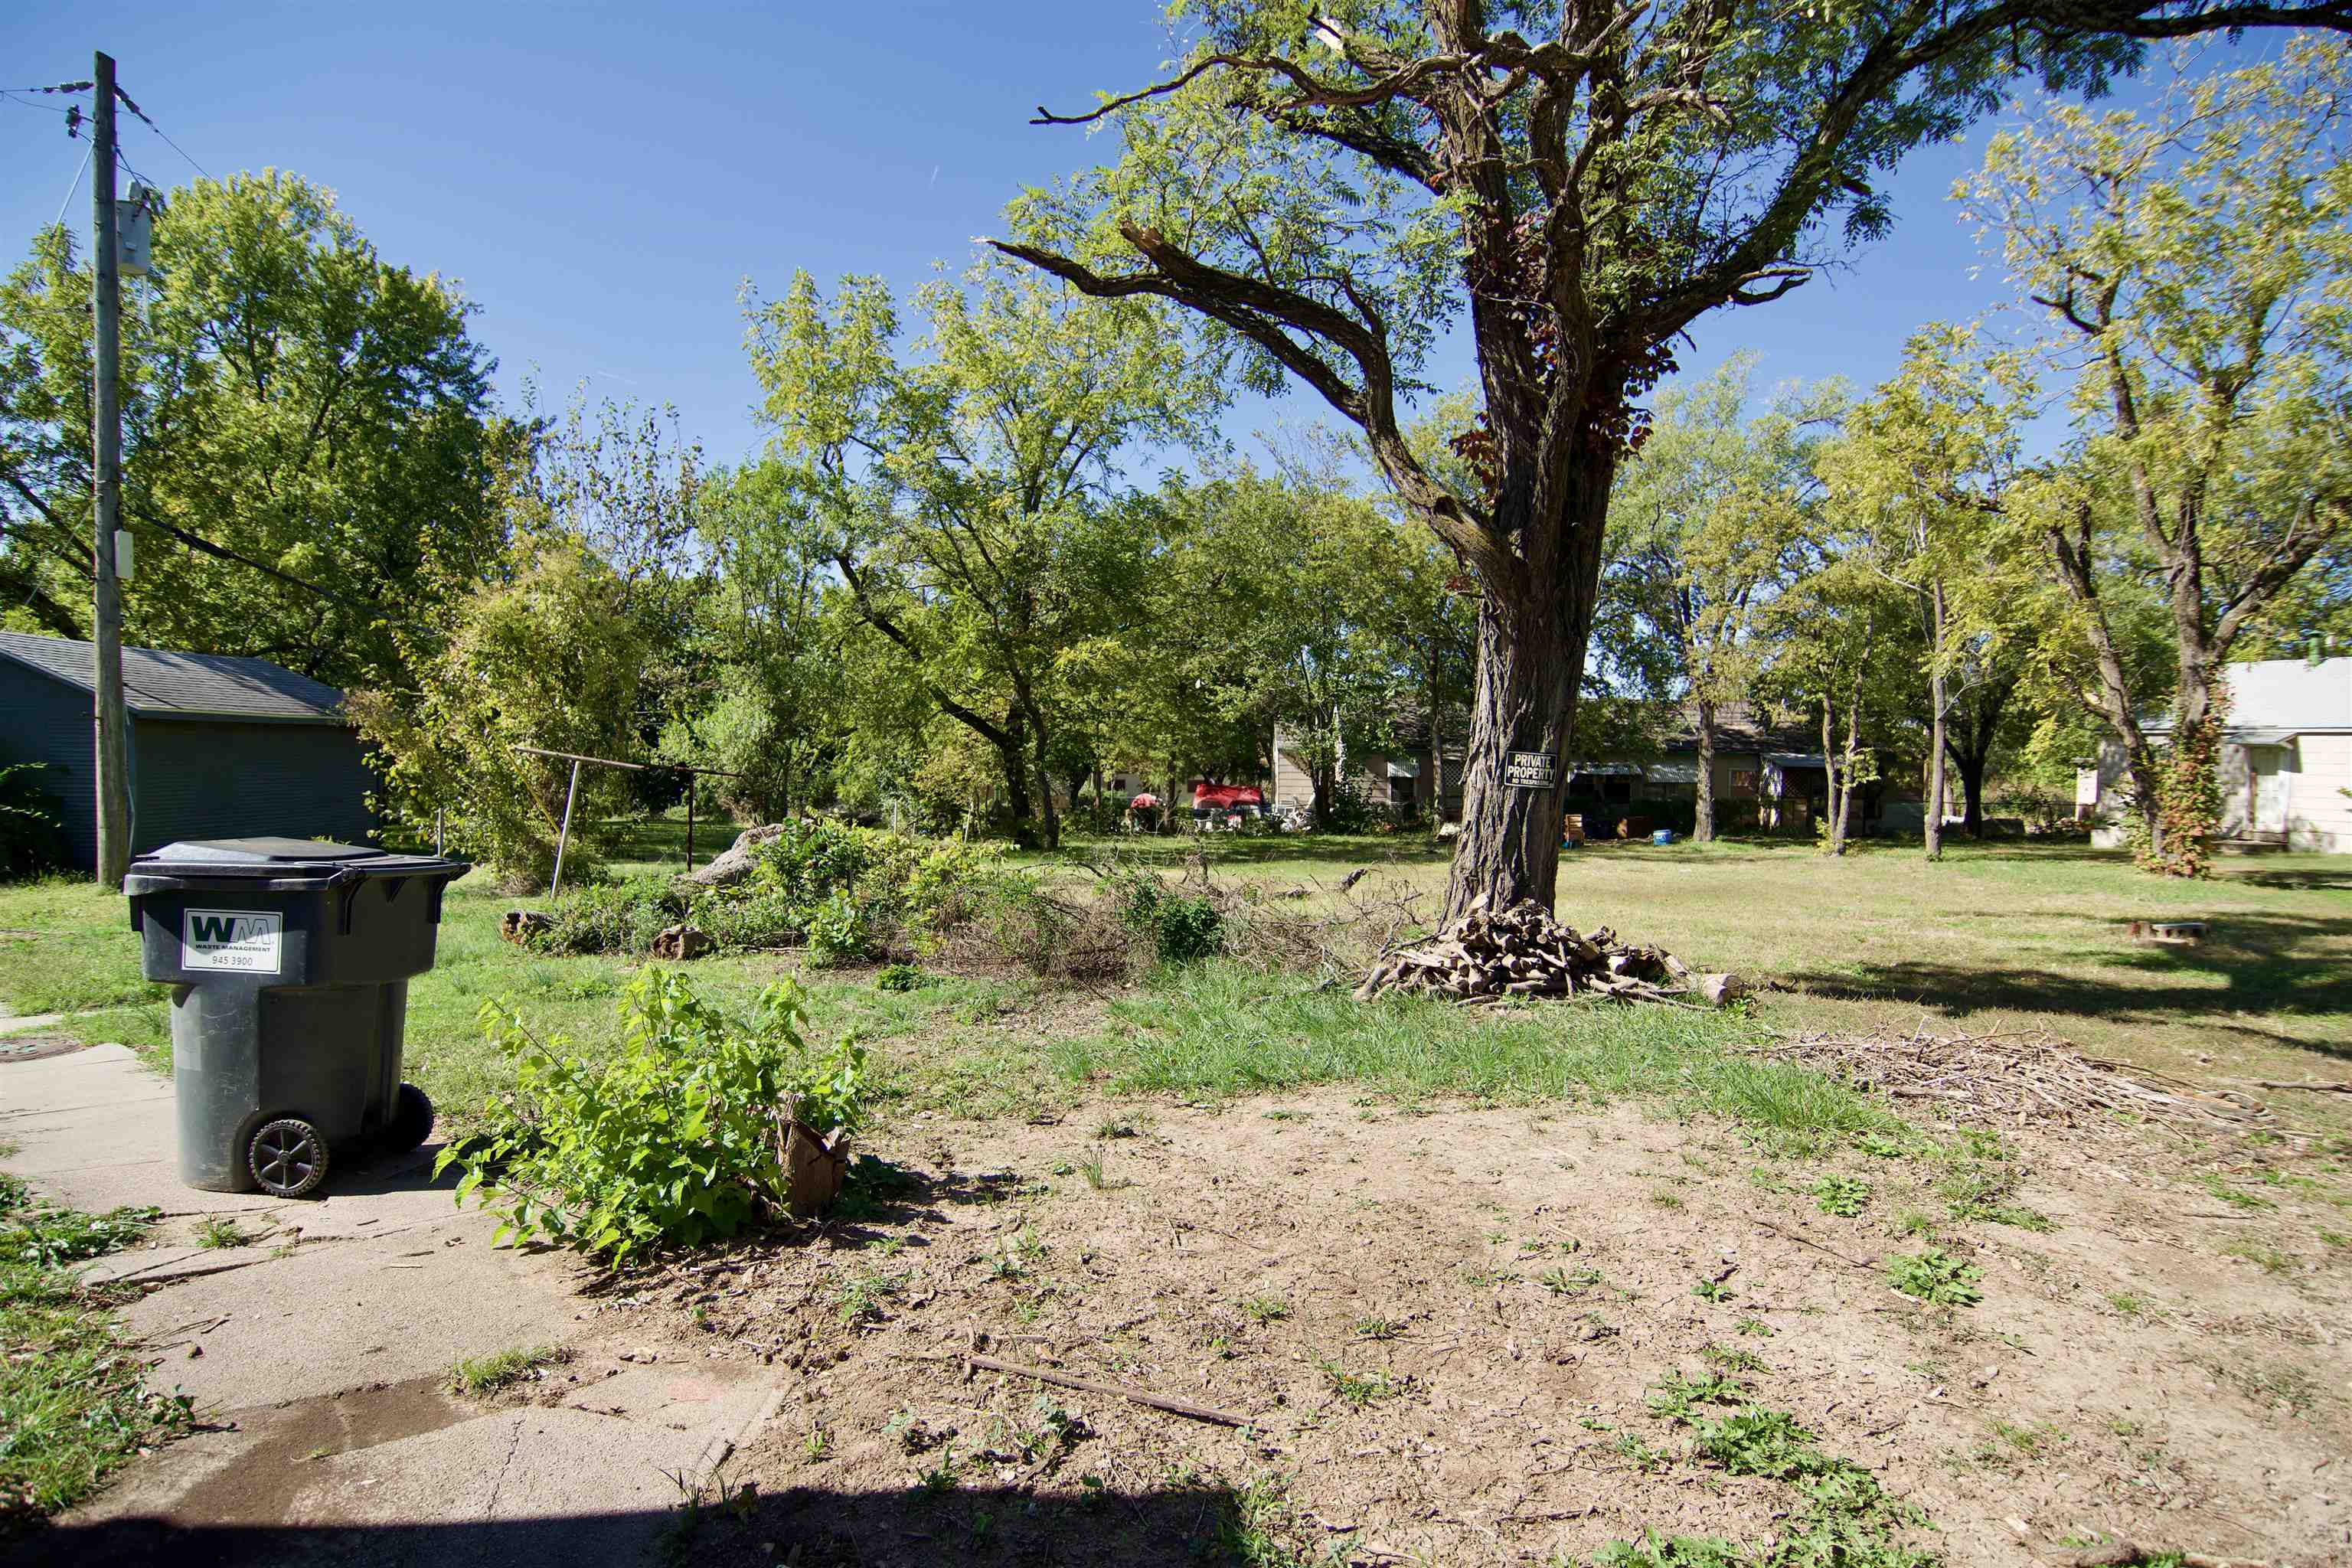 Investment duplex property on .22 acres. This is an as-is sale.